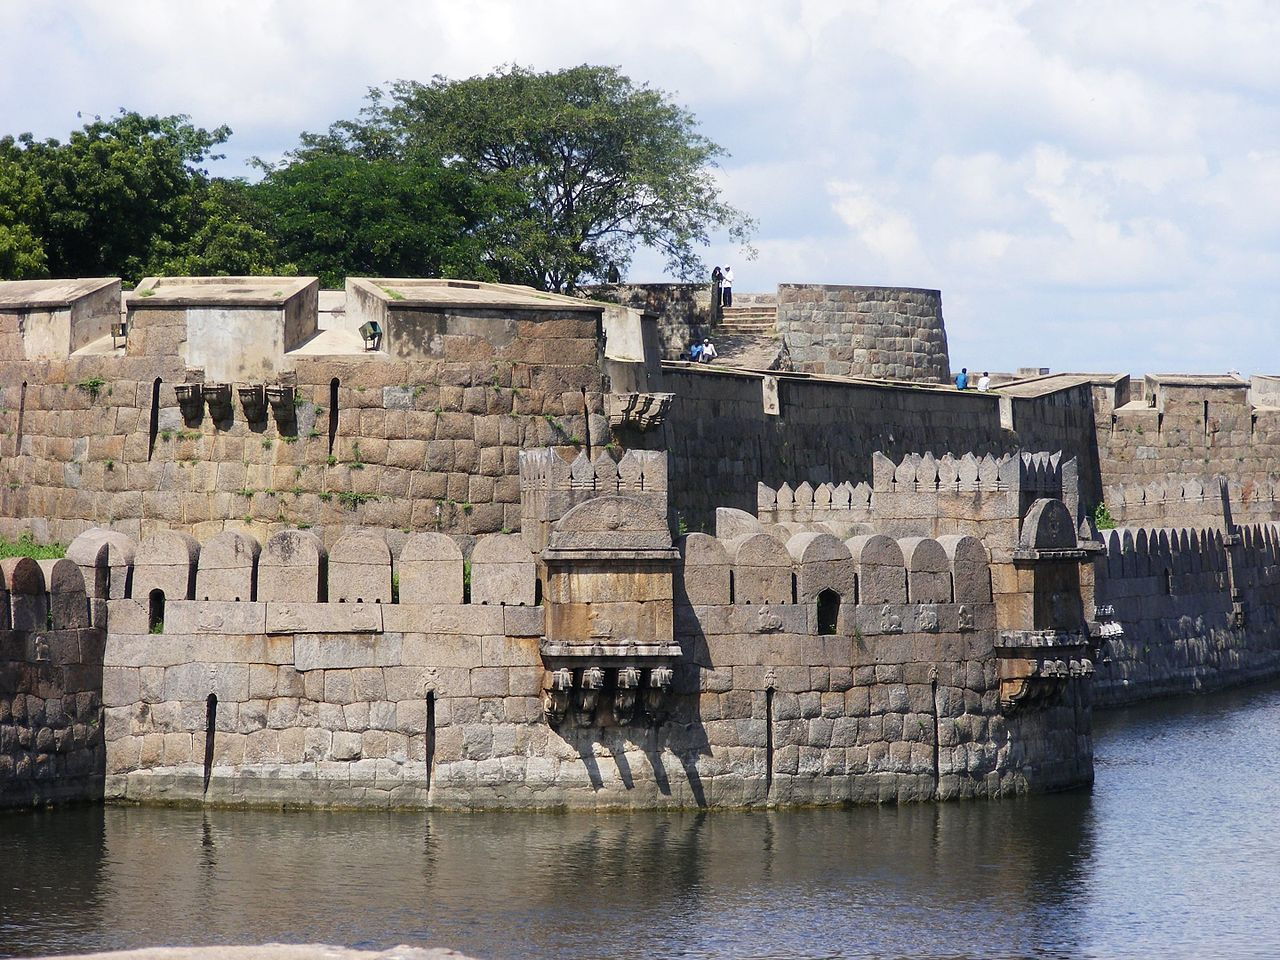 Vellore Fort in Vellore - Amazing Fort In Tamil Nadu